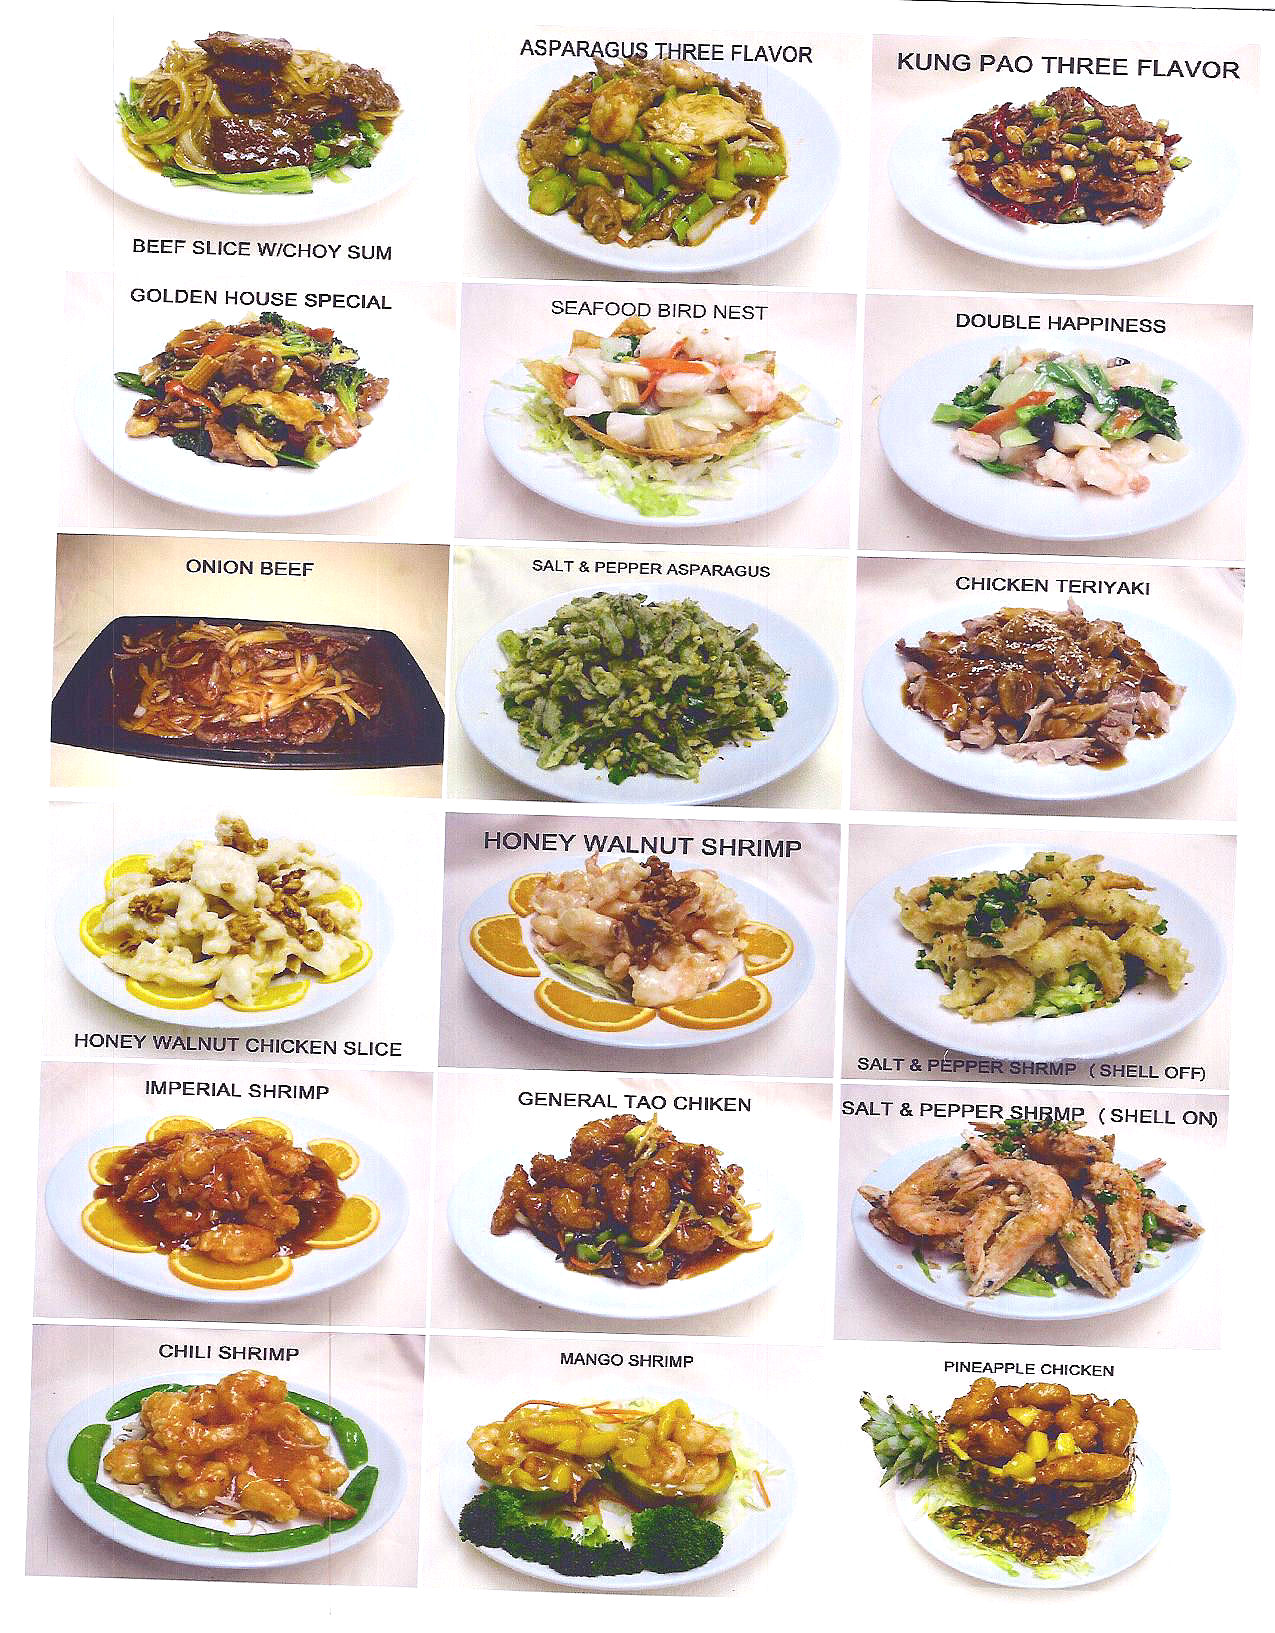 Cantonese chinese food images for Asia cuisine menu